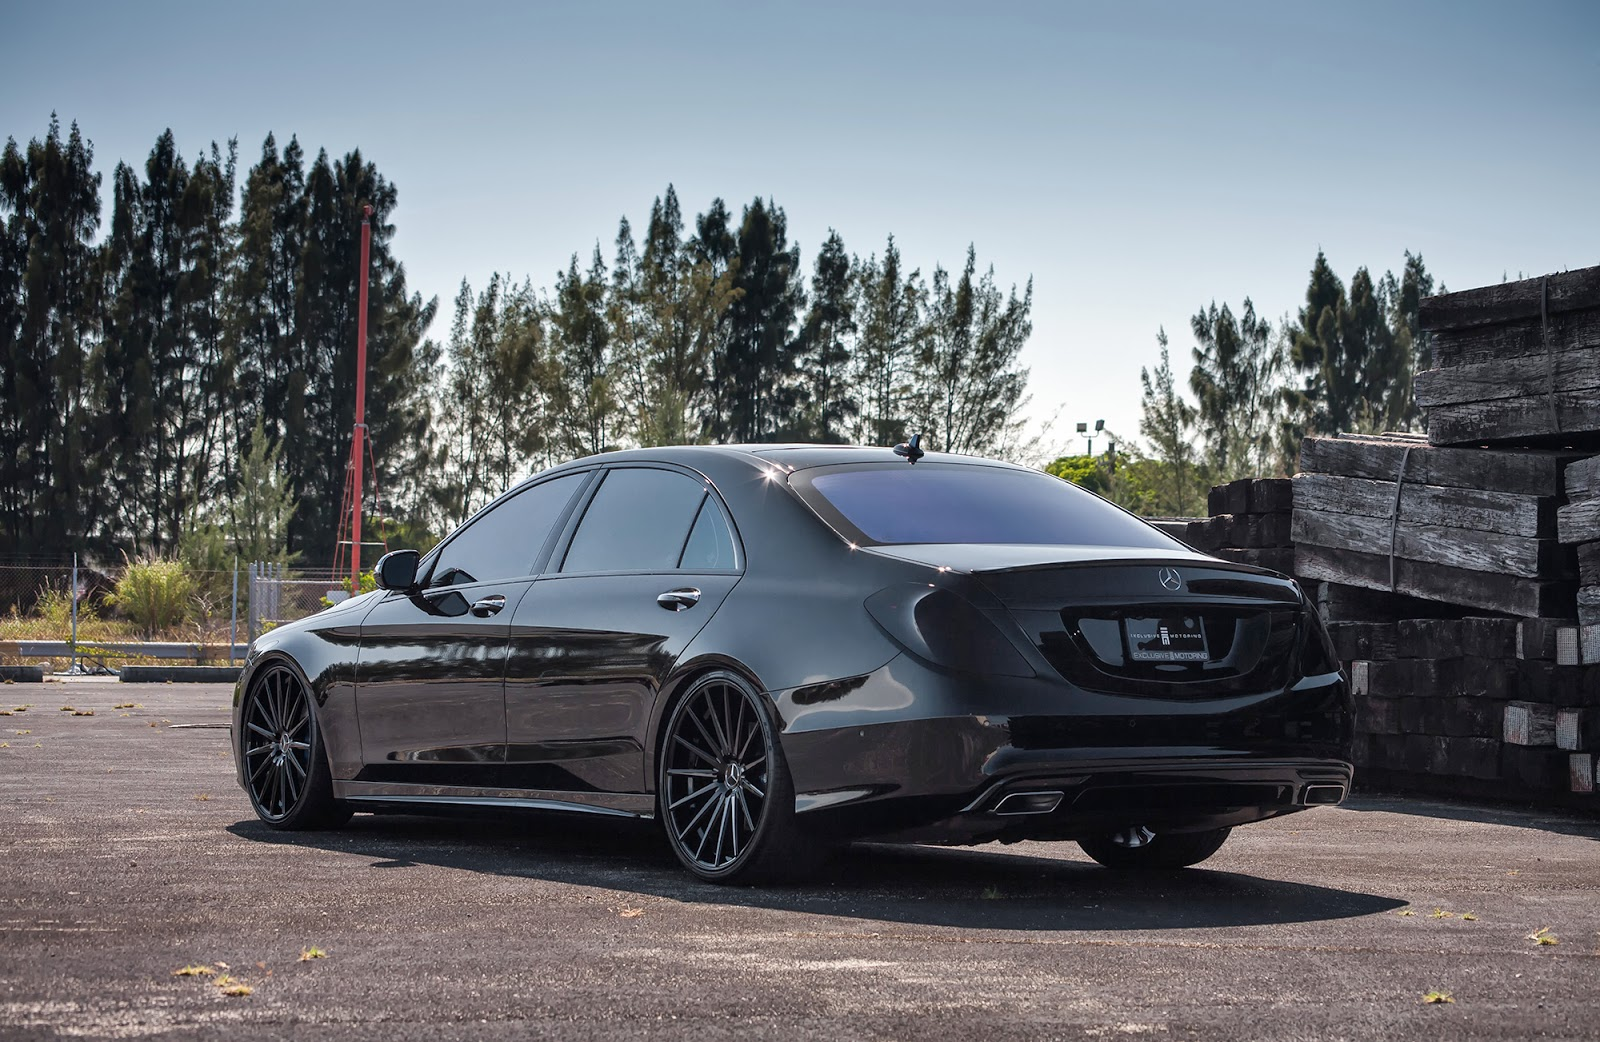 Mercedes Benz Of Anaheim >> Blacked Out Mercedes S550 On Vossen Wheels by Exclusive Motoring - Doing Donuts With Bernie